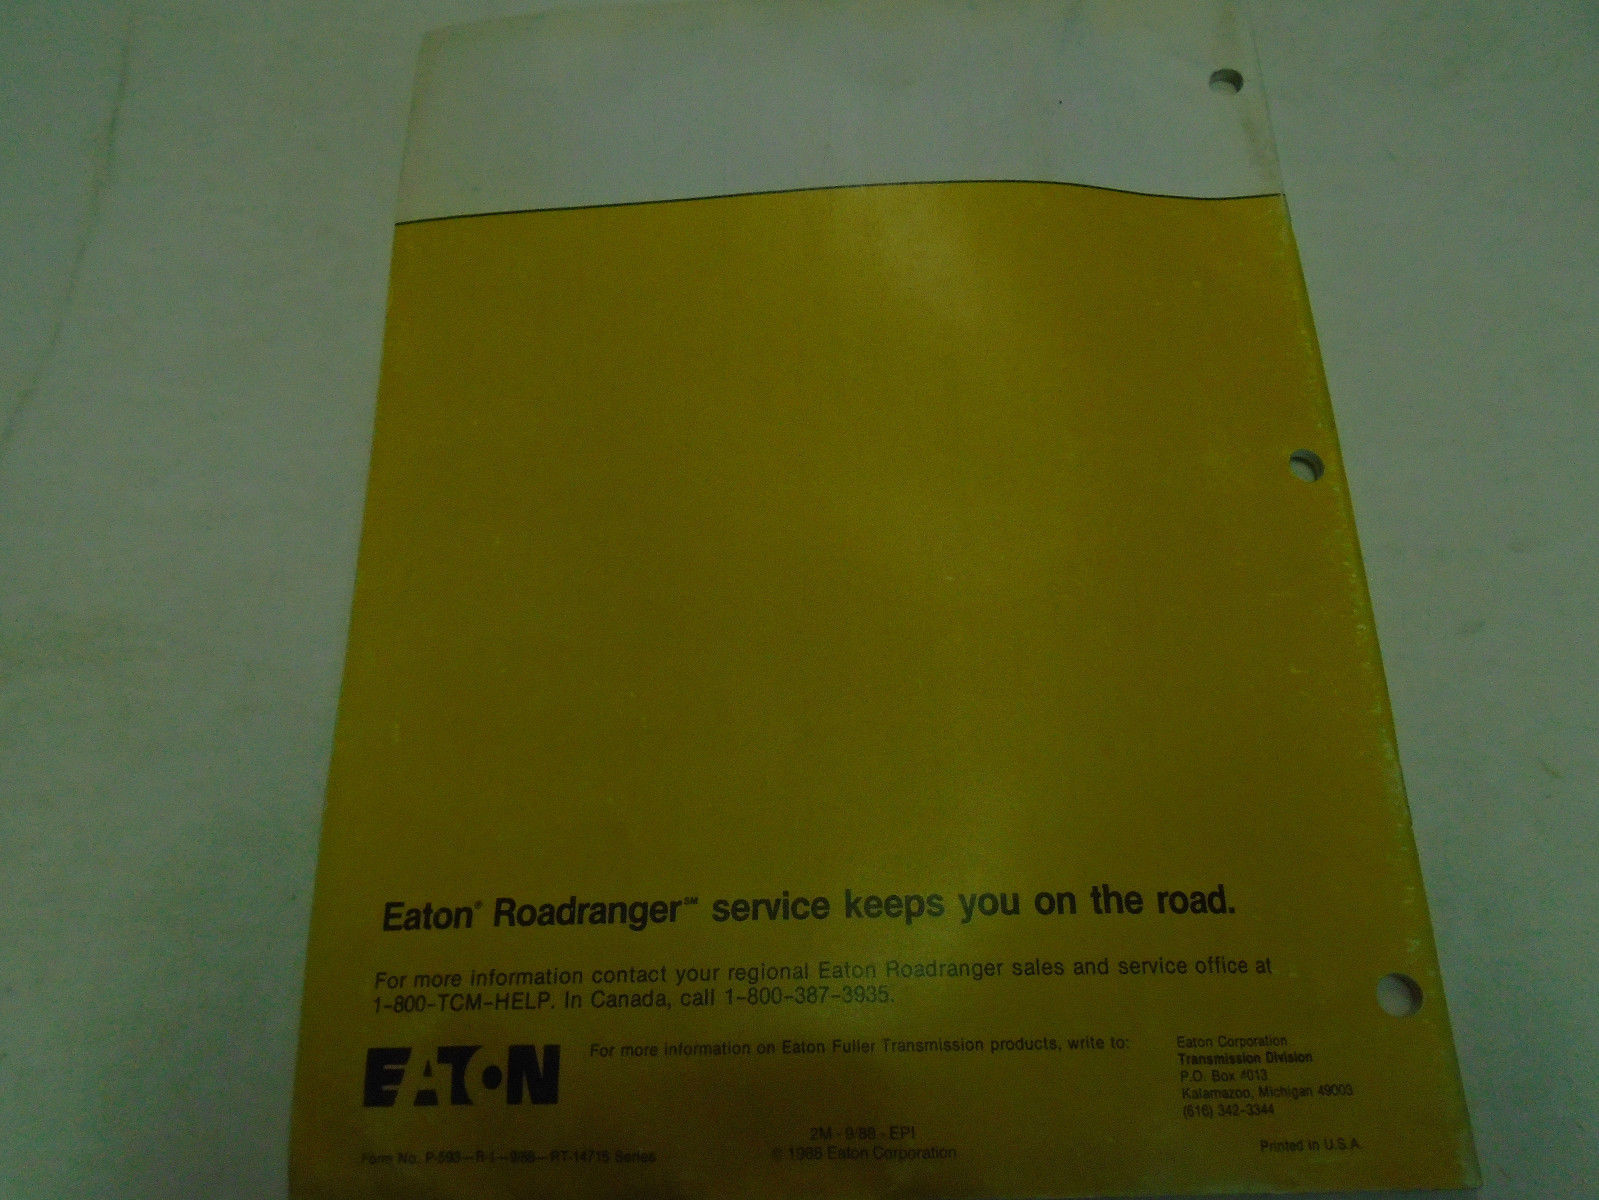 1988 Eaton Fuller RT-14715 Series and similar items